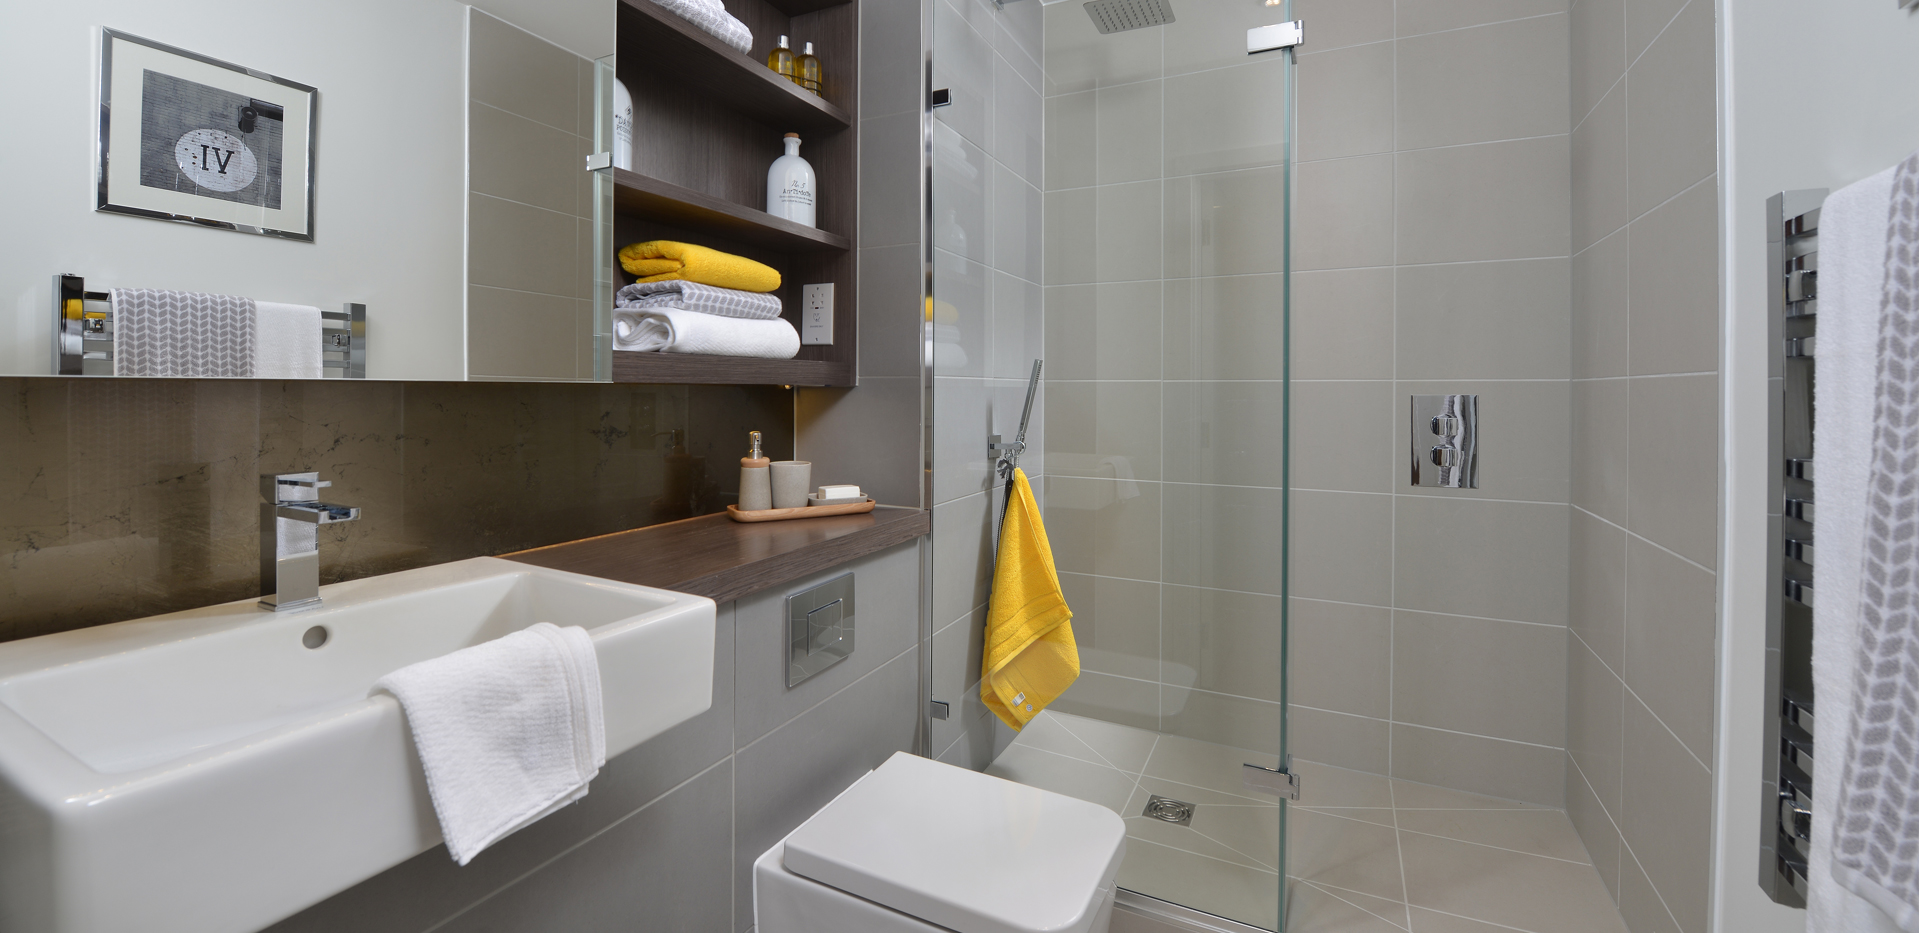 Berkeley, Kidbrooke Village, The Square, Shower Room, Interior